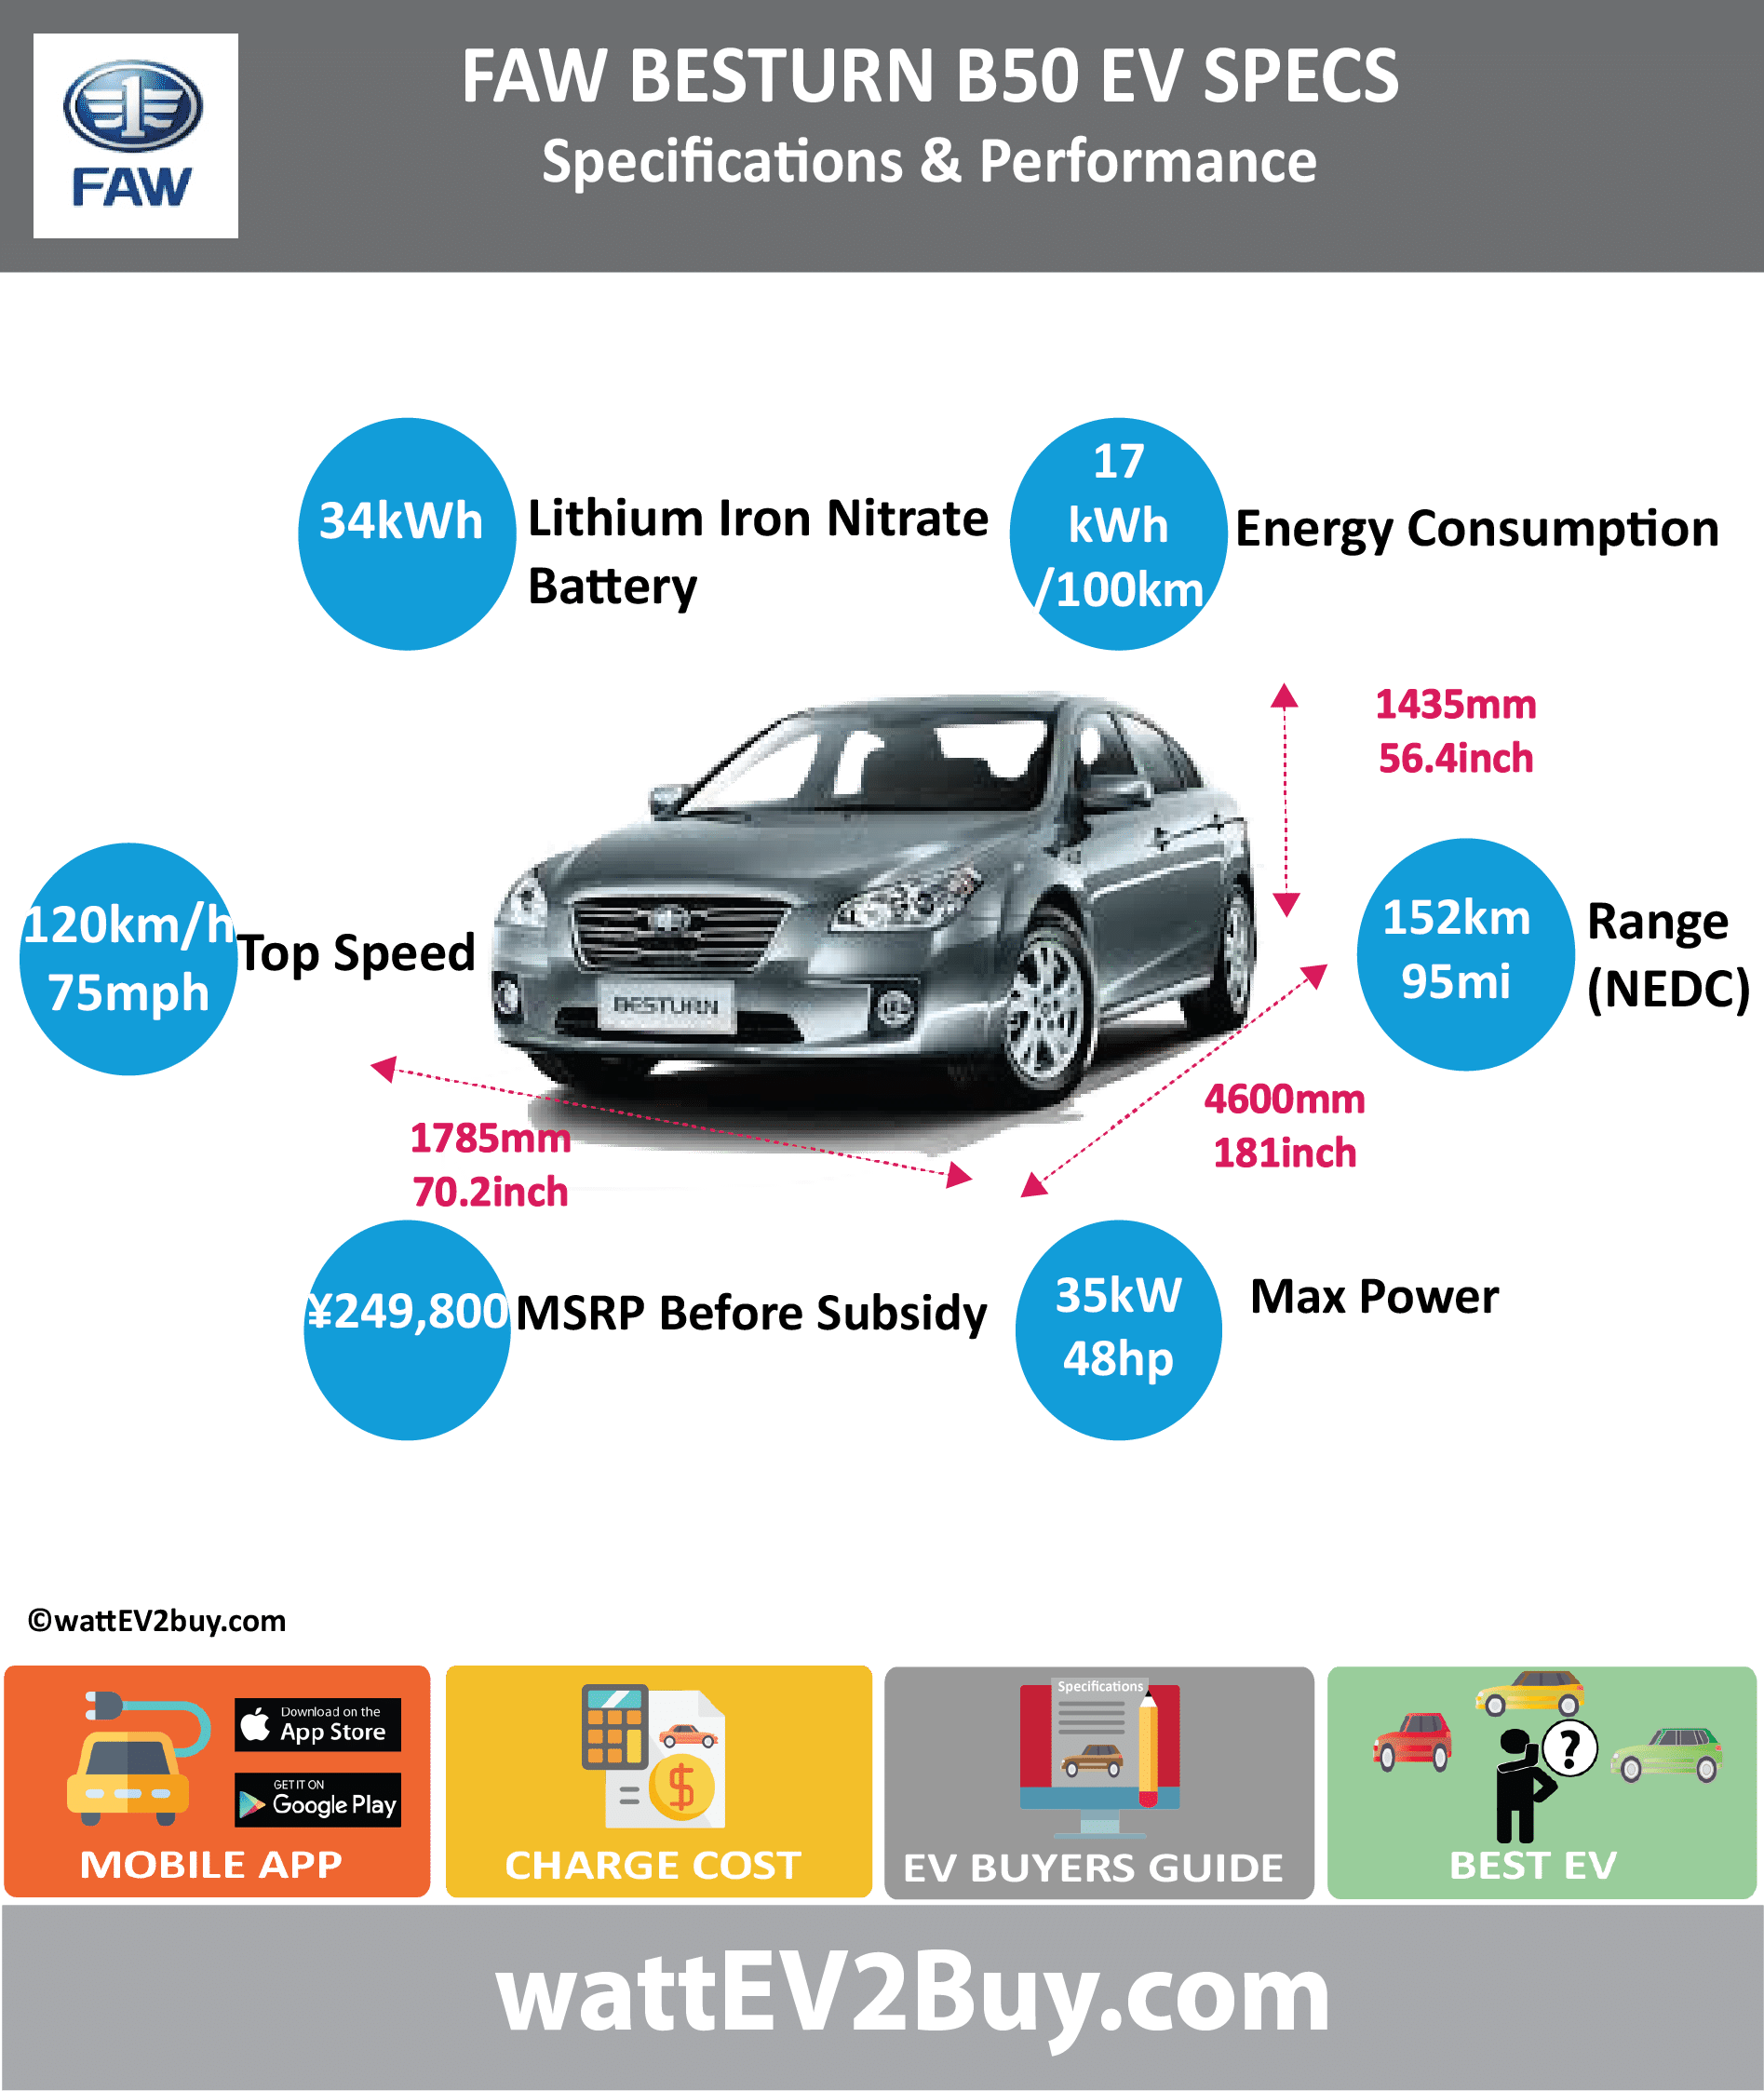 FAW Besturn B50 EV Specs			 wattev2Buy.com	2014	2015	2106 Battery Chemistry			Lithium Iron Nitrate Battery Capacity kWh	34		 Battery Nominal rating kWh			 Voltage V			 Amps Ah	60		 Cells			 Modules			 Efficiency			 Weight (kg)	240		 Cell Type			 SOC			 Cooling			 Cycles			 Battery Type			 Depth of Discharge (DOD)			 Energy Density Wh/kg			 Battery Manufacturer	Fawer Automotive Components Co., Ltd.		 Battery Warranty - years			 Battery Warranty - km			 Battery Warranty - miles			 Battery Electric Range - at constant 38mph	87.5		125 Battery Electric Range - at constant 60km/h	140		200 Battery Electric Range - NEDC Mi			95 Battery Electric Range - NEDC km			152 Battery Electric Range - CCM Mi			 Battery Electric Range - CCM km			 Battery Electric Range - EPA Mi			 Battery Electric Range - EPA km			 Electric Top Speed - mph	75		 Electric Top Speed - km/h	120		 Acceleration 0 - 100km/h sec			 Acceleration 0 - 50km/h sec			 Acceleration 0 - 62mph sec			 Acceleration 0 - 60mph sec			 Acceleration 0 - 37.2mph sec			 Wireless Charging			 Direct Current Fast Charge kW			 Charger Efficiency			 Onboard Charger kW			 Onboard Charger Optional kW			 Charging Cord - amps			 Charging Cord - volts			 LV 1 Charge kW			 LV 1 Charge Time (Hours)			 LV 2 Charge kW			 LV 2 Charge Time (Hours)	8		 LV 3 CCS/Combo kW			 LV 3 Charge Time (min to 70%)			 LV 3 Charge Time (min to 80%)	30		 LV 3 Charge Time (mi)			 LV 3 Charge Time (km)			 Supercharger			 Charging System kW			 Charger Output			 Charge Connector			 Power Outlet kW			 Power Outlet Amps			 MPGe Combined - miles			 MPGe Combined - km			 MPGe City - miles			 MPGe City - km			 MPGe Highway - miles			 MPGe Highway - km			 Max Power - hp (Electric Max)	120.6918		 Max Power - kW  (Electric Max)	90		 Max Torque - lb.ft  (Electric Max)			 Max Torque - N.m  (Electric Max)			 Drivetrain			 Generator			 Motor Type			 Electric Motor Manufacturer	FOREX AUTO PARTS CO., LTD		 Electric Motor Output kW	35		 Electric Motor Output hp	46.9357		 Transmission			 Electric Motor - Rear			 Max Power - hp (Rear)			 Max Power - kW (Rear)			 Max Torque - lb.ft (Rear)			 Max Torque - N.m (Rear)			 Electric Motor - Front			 Max Power - hp (Front)			 Max Power - kW (Front)			 Max Torque - lb.ft (Front)			 Max Torque - N.m (Front)			 Energy Consumption kWh/100km	17		 Energy Consumption kWh/100miles			 Deposit			 GB Battery Lease per month			 EU Battery Lease per month			 China Battery Lease per month			 MSRP (expected)			 EU MSRP (before incentives & destination)			 GB MSRP (before incentives & destination)			 US MSRP (before incentives & destination)			 CHINA MSRP (before incentives & destination)			 ¥249,800.00  Local Currency MSRP			 MSRP after incentives			 Vehicle			 Trims			 Doors	4		 Seating	5		 Dimensions			 Luggage (L)			 Luggage Max (L)			 GVWR (kg)	1980		 GVWR (lbs)			 Curb Weight (kg)	1530		 Curb Weight (lbs)			 Payload Capacity (kg)			 Payload Capacity (lbs)			 Towing Capacity (lbs)			 Max Load Height (m)			 Ground Clearance (inc)			 Ground Clearance (mm)			 Lenght (mm)	4600		 Width (mm)	1785		 Height (mm)	1435		 Wheelbase (mm)	2675		 Lenght (inc)	181.0		 Width (inc)	70.2		 Height (inc)	56.4		 Wheelbase (inc)	105.2		 Other			 Utility Factor			 Auto Show Unveil			 Availability			 Market			 Segment			 LCD Screen (inch)			 Class			 Safety Level			 Unveiled			 Relaunch			 First Delivery			 Chassis designed			 Based On			 AKA			 Self-Driving System			 SAE Autonomous Level			 Connectivity			 Unique			 Extras			 Incentives			 Home Charge Installation			 Public Charging			 Subsidy			 Chinese Name	奔腾  EV		 Model Code	CA7005EV6		 WEBSITE